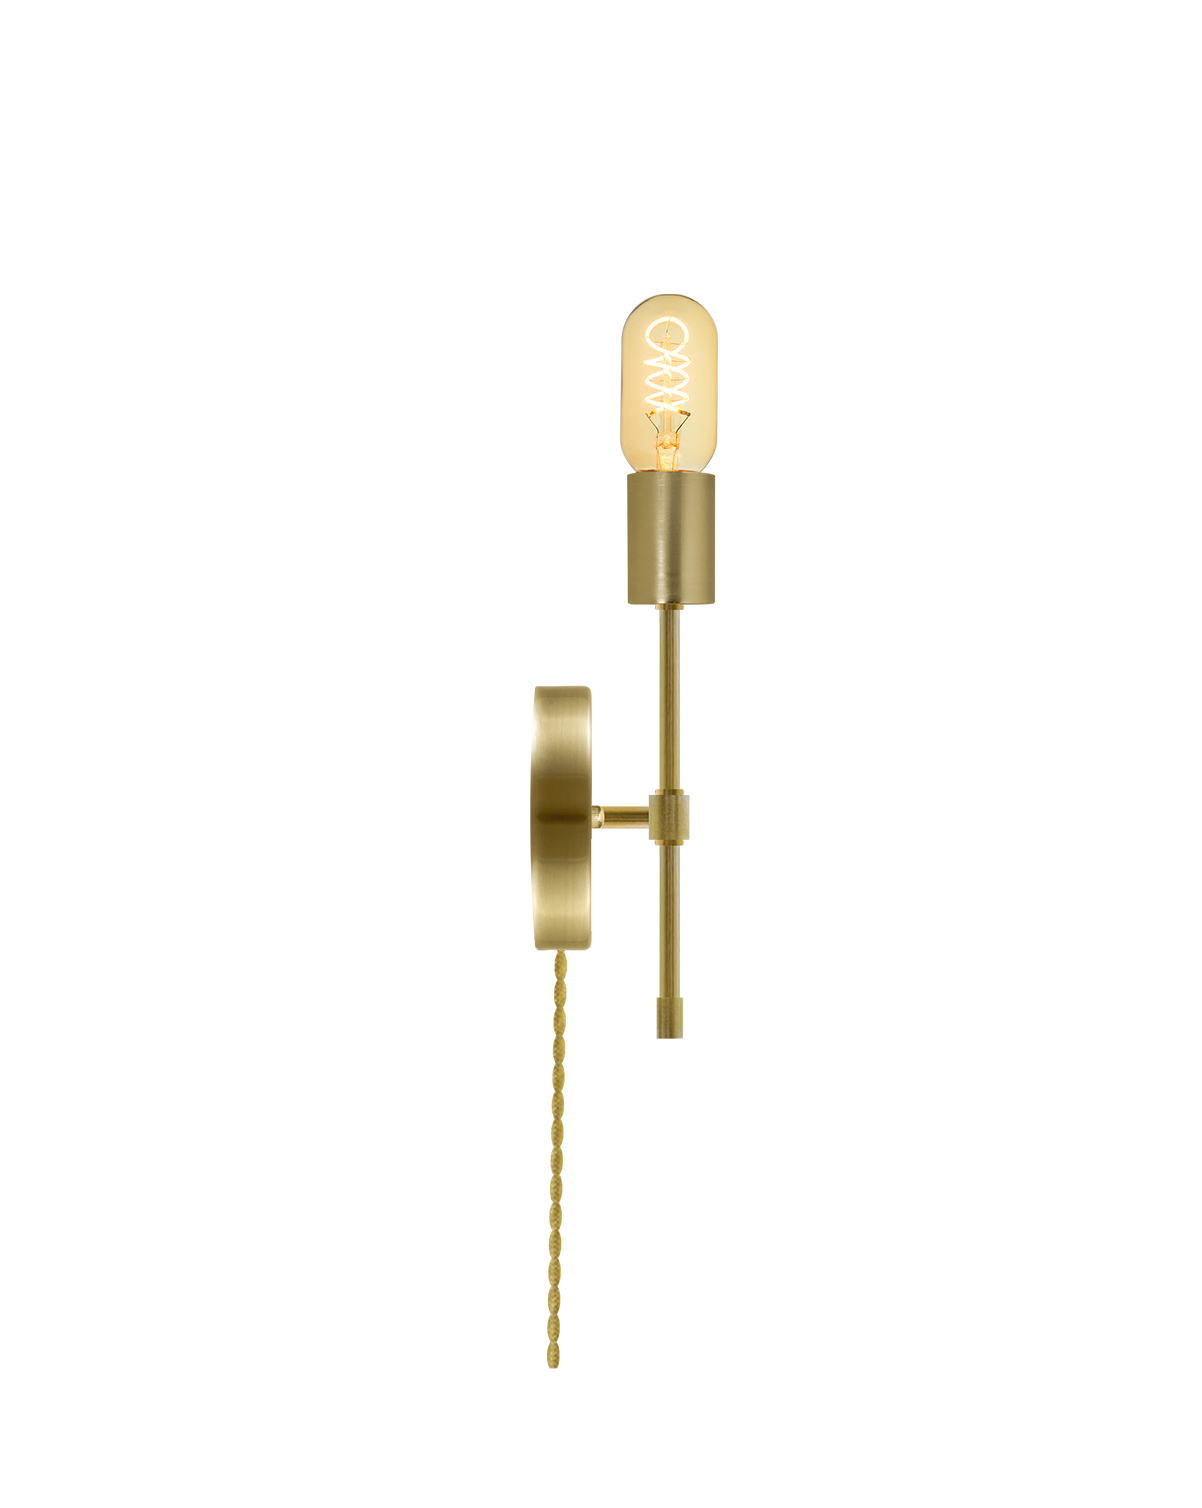 Plug-In Torch Wall Sconce: Brass Hangout Lighting